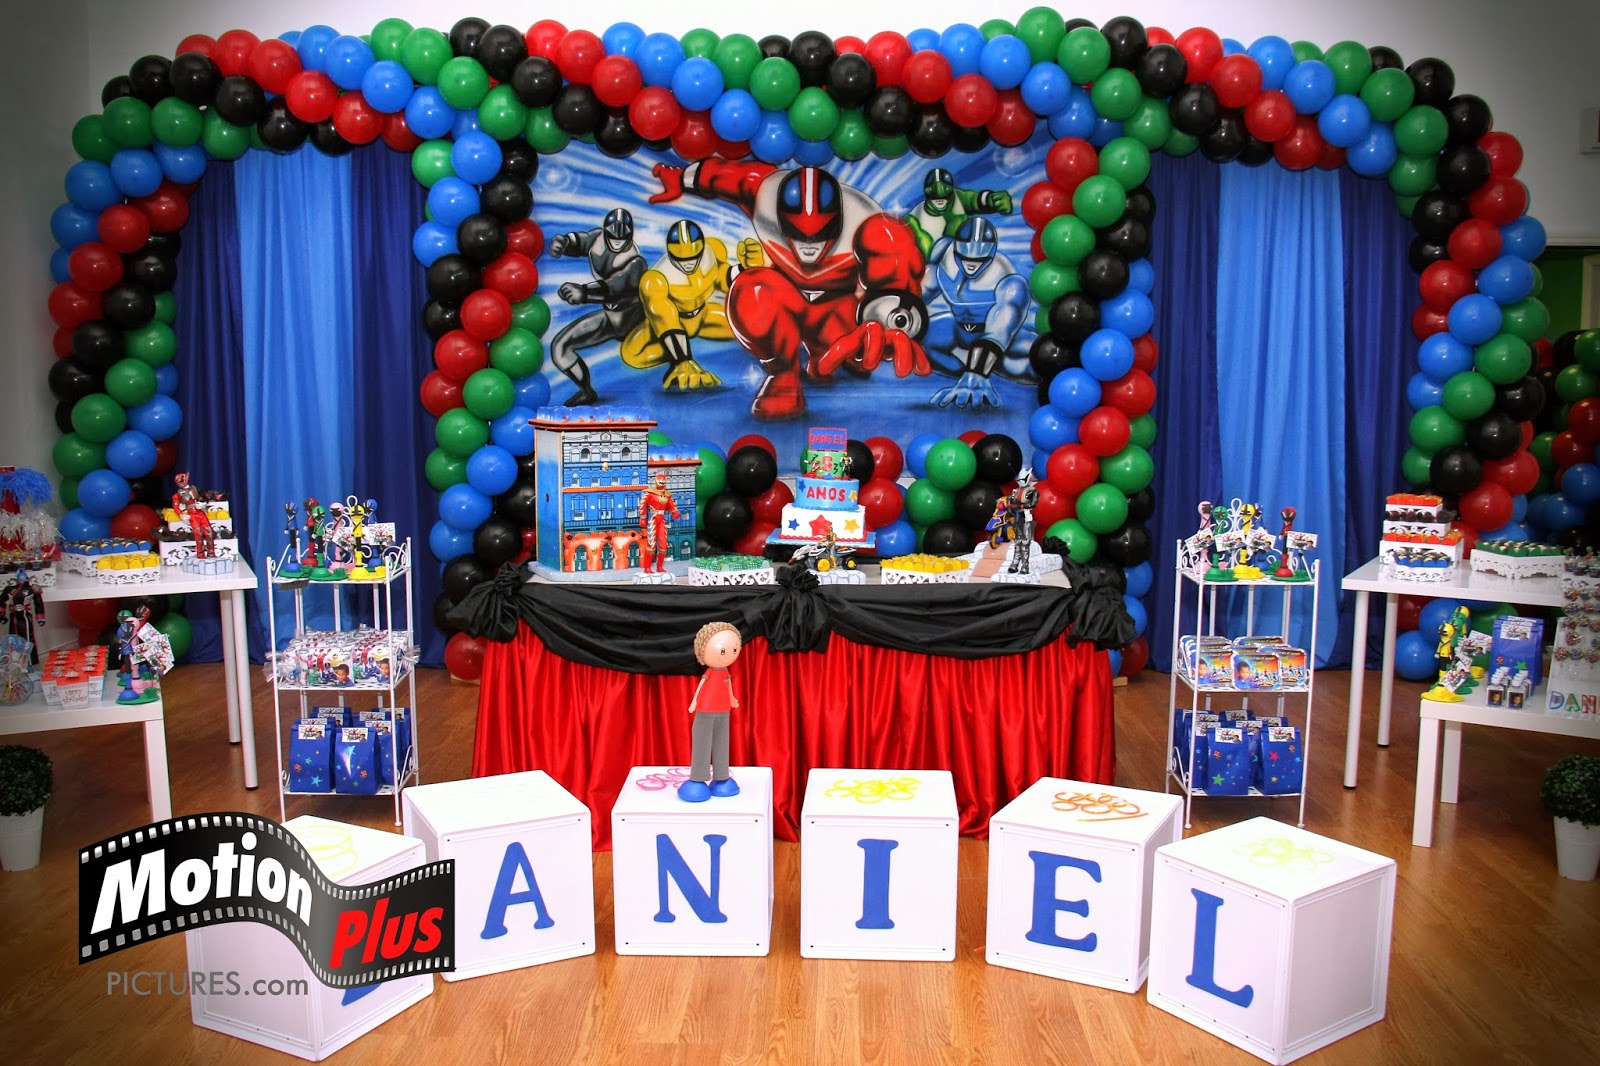 Motion plus pictures transformers themed birthday party ideas for 5th birthday decoration ideas